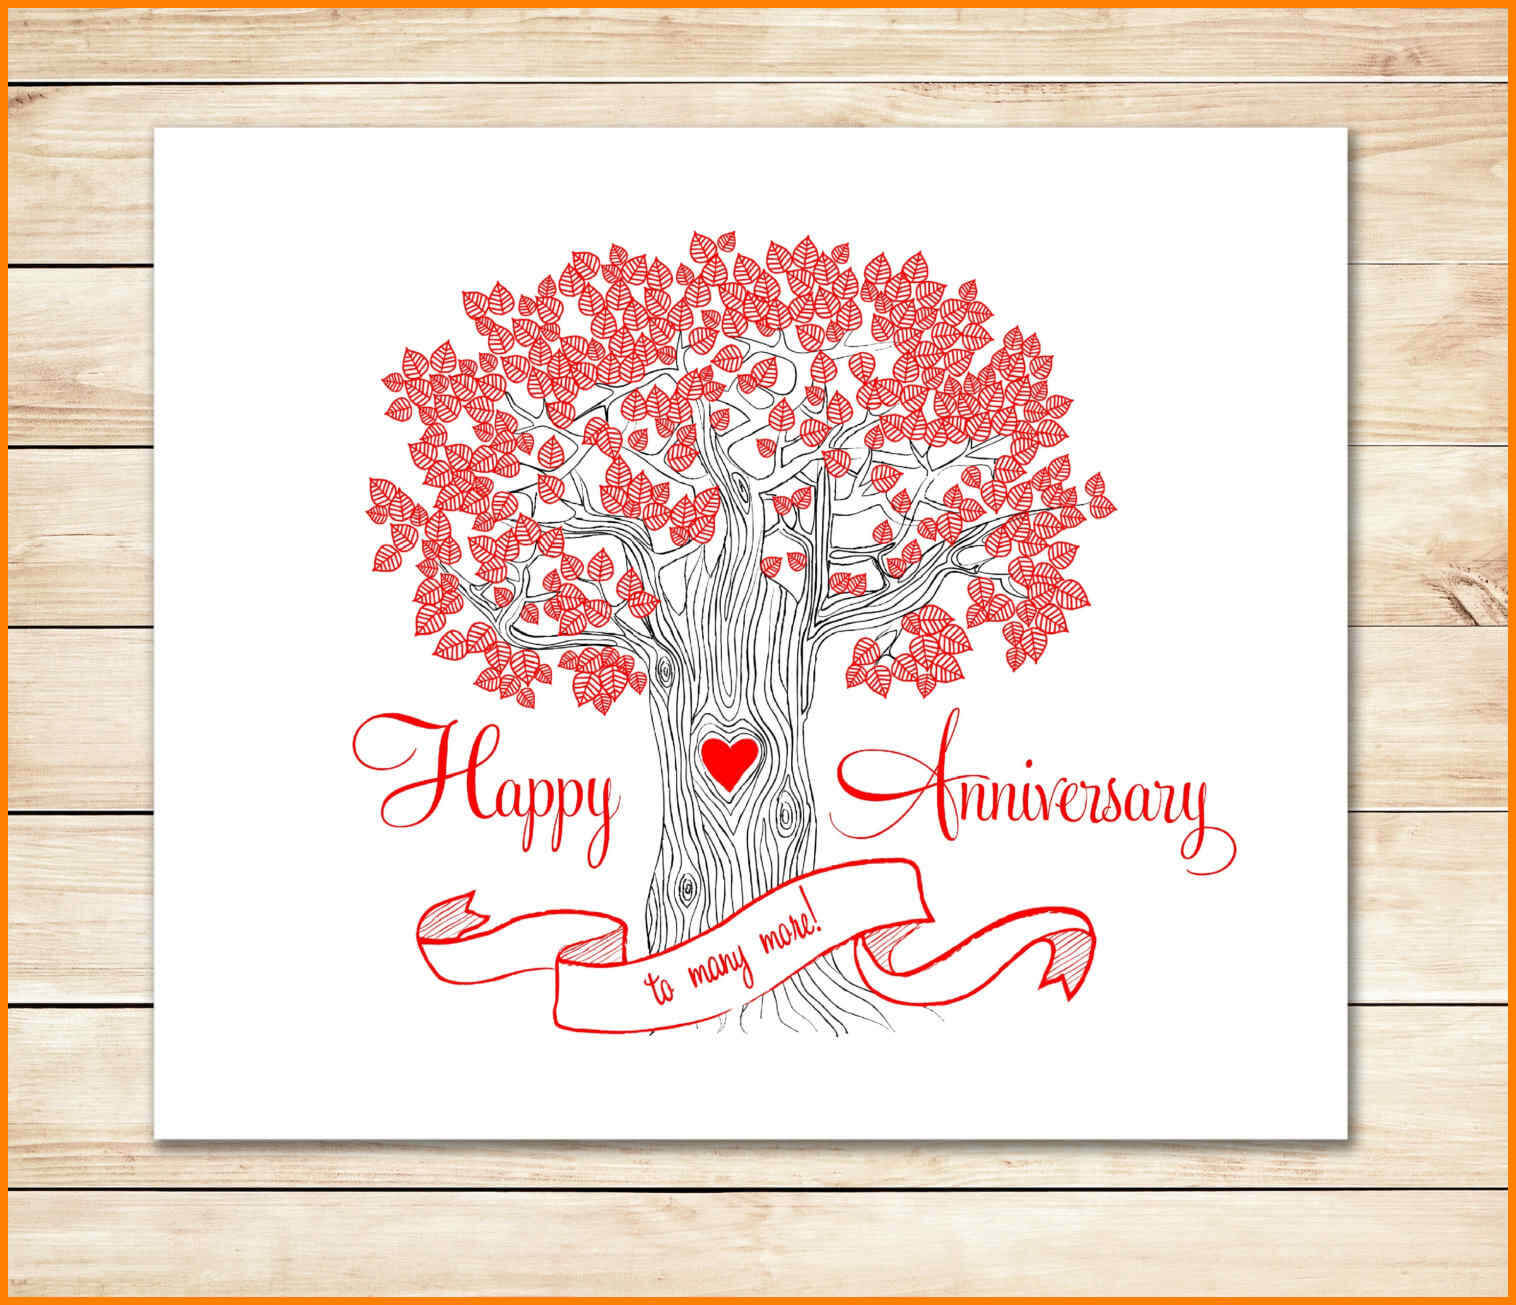 8+ Happy Anniversary Templates Free | Plastic Mouldings Regarding Template For Anniversary Card